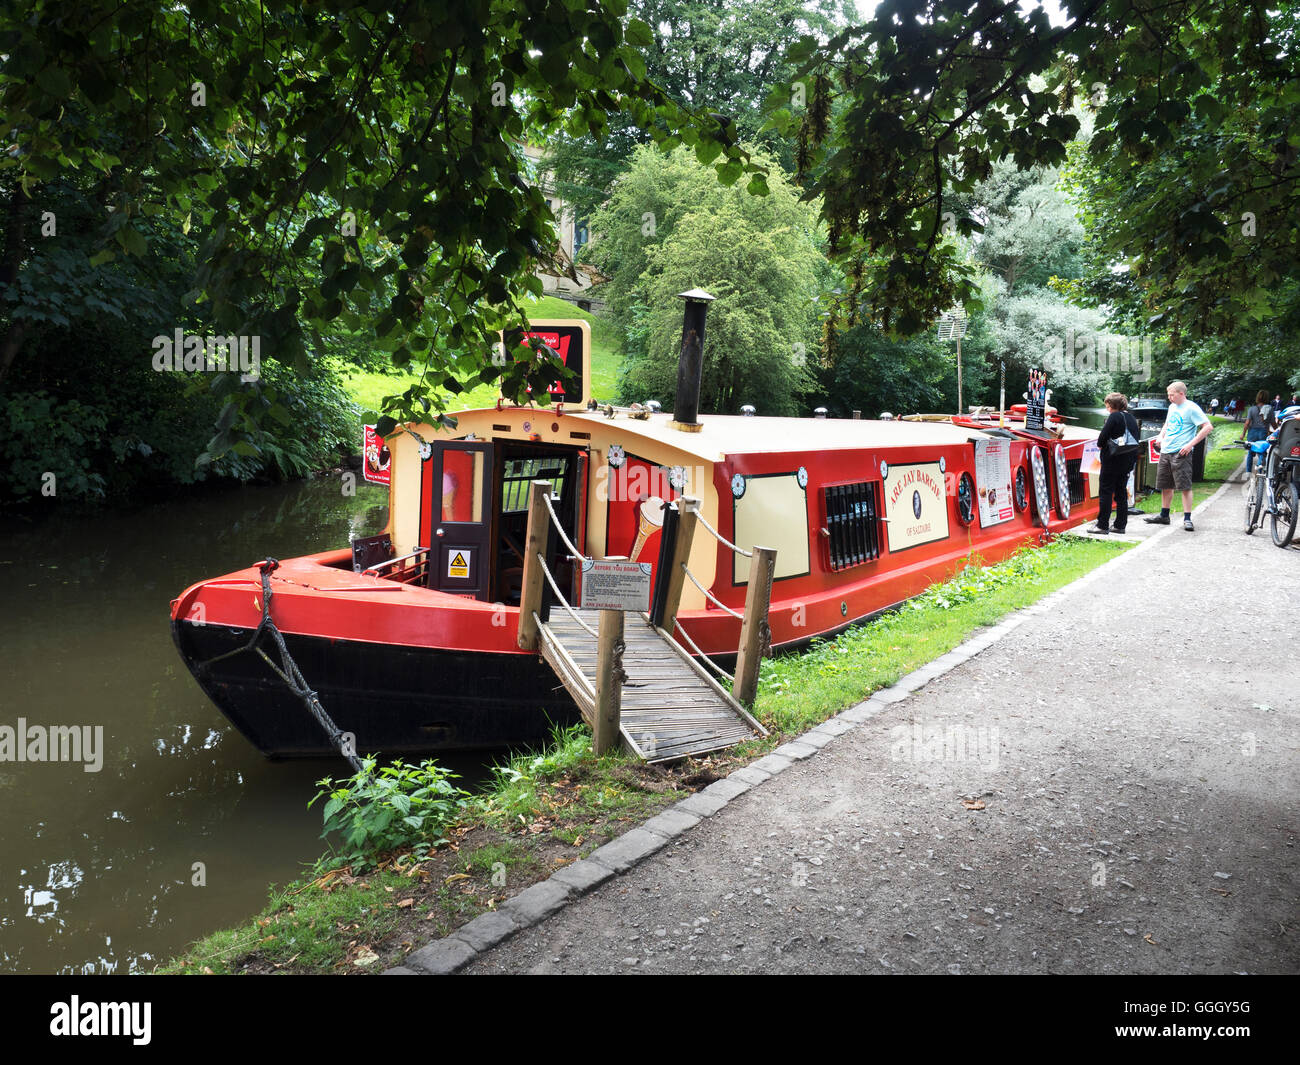 Narrowboat Cafe and Ice Cream Shop on the Leeds and Liverpool Canal at Saltaire West Yorkshire England - Stock Image